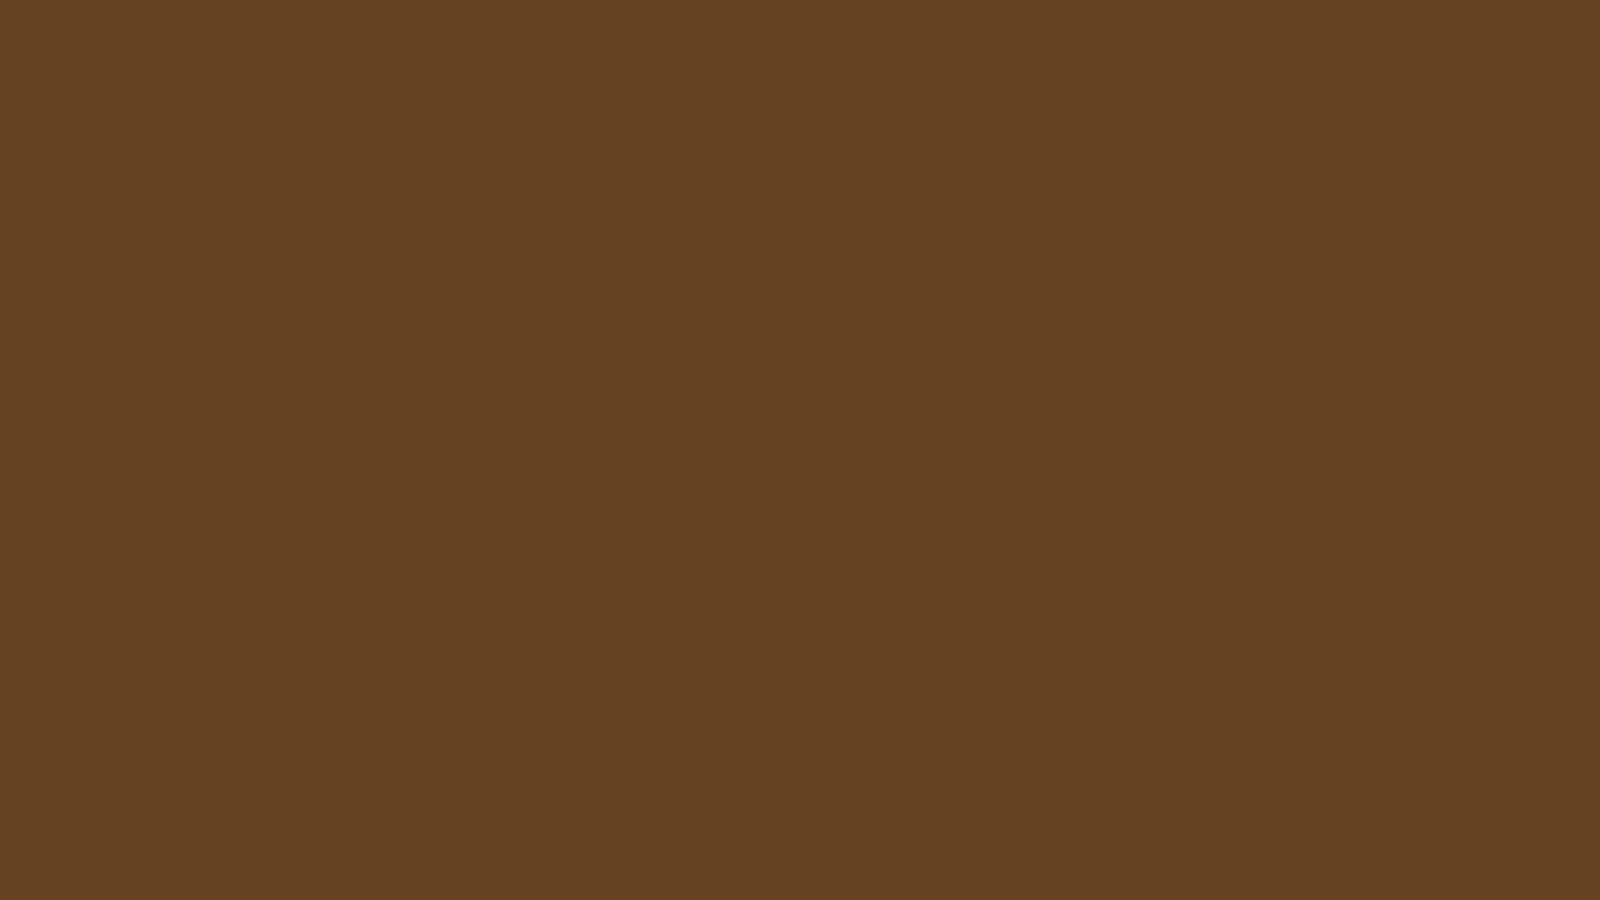 1600x900 Dark Brown Solid Color Background